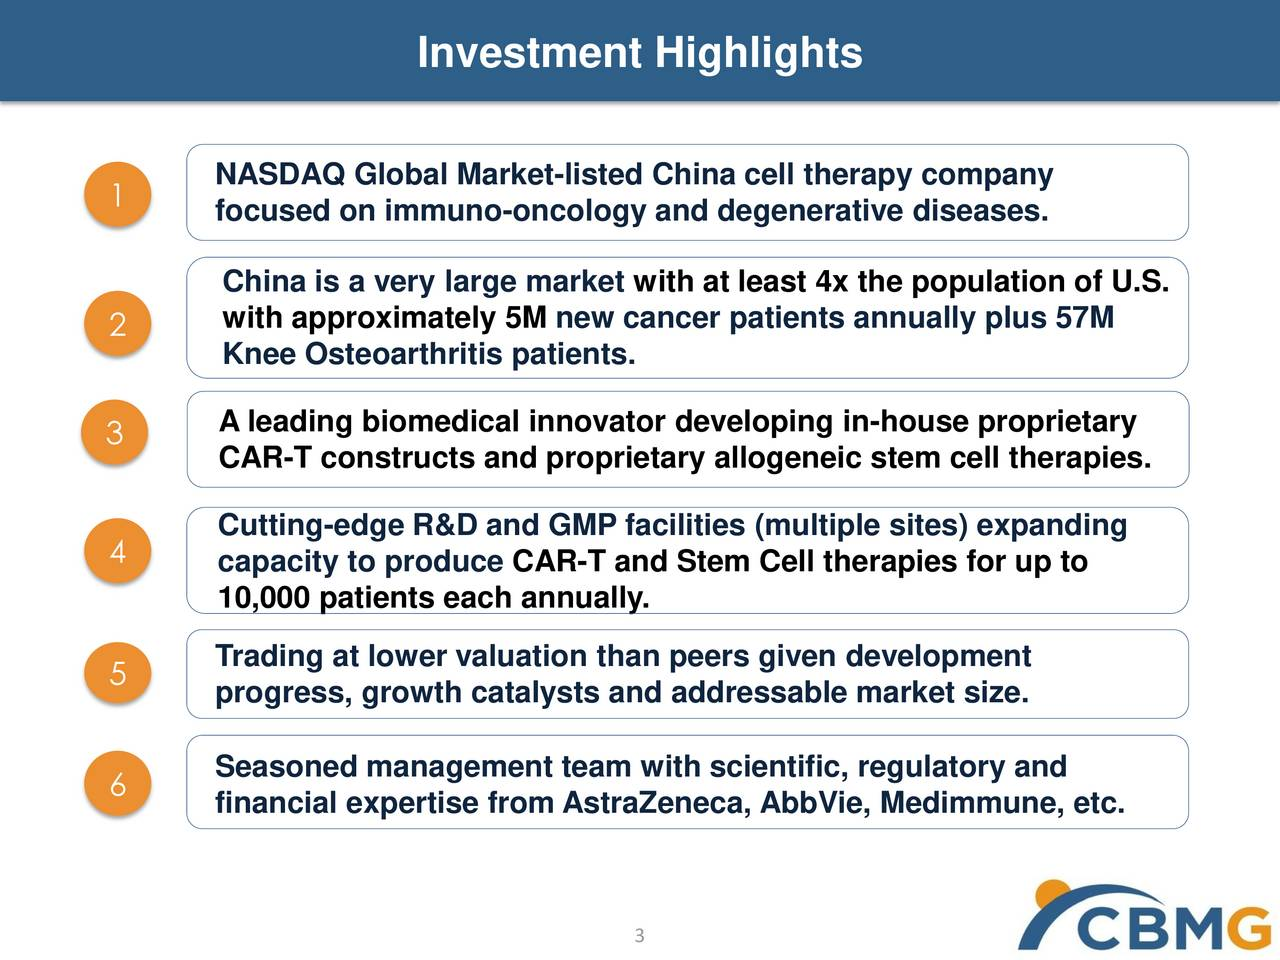 1 NASDAQ Global Market-listed China cell therapy company 1 focused on immuno-oncology and degenerative diseases. China is a very large market with at least 4x the population of U.S. 2 with approximately 5M new cancer patients annually plus 57M Knee Osteoarthritis patients. A leading biomedical innovator developing in-house proprietary 3 CAR-T constructs and proprietary allogeneic stem cell therapies. Cutting-edge R&D and GMP facilities (multiple sites) expanding 4 capacity to produce CAR-T and Stem Cell therapies for up to 10,000 patients each annually. 5 Trading at lower valuation than peers given development 5 progress, growth catalysts and addressable market size. Seasoned management team with scientific, regulatory and 5 financial expertise from AstraZeneca, AbbVie, Medimmune, etc. 3